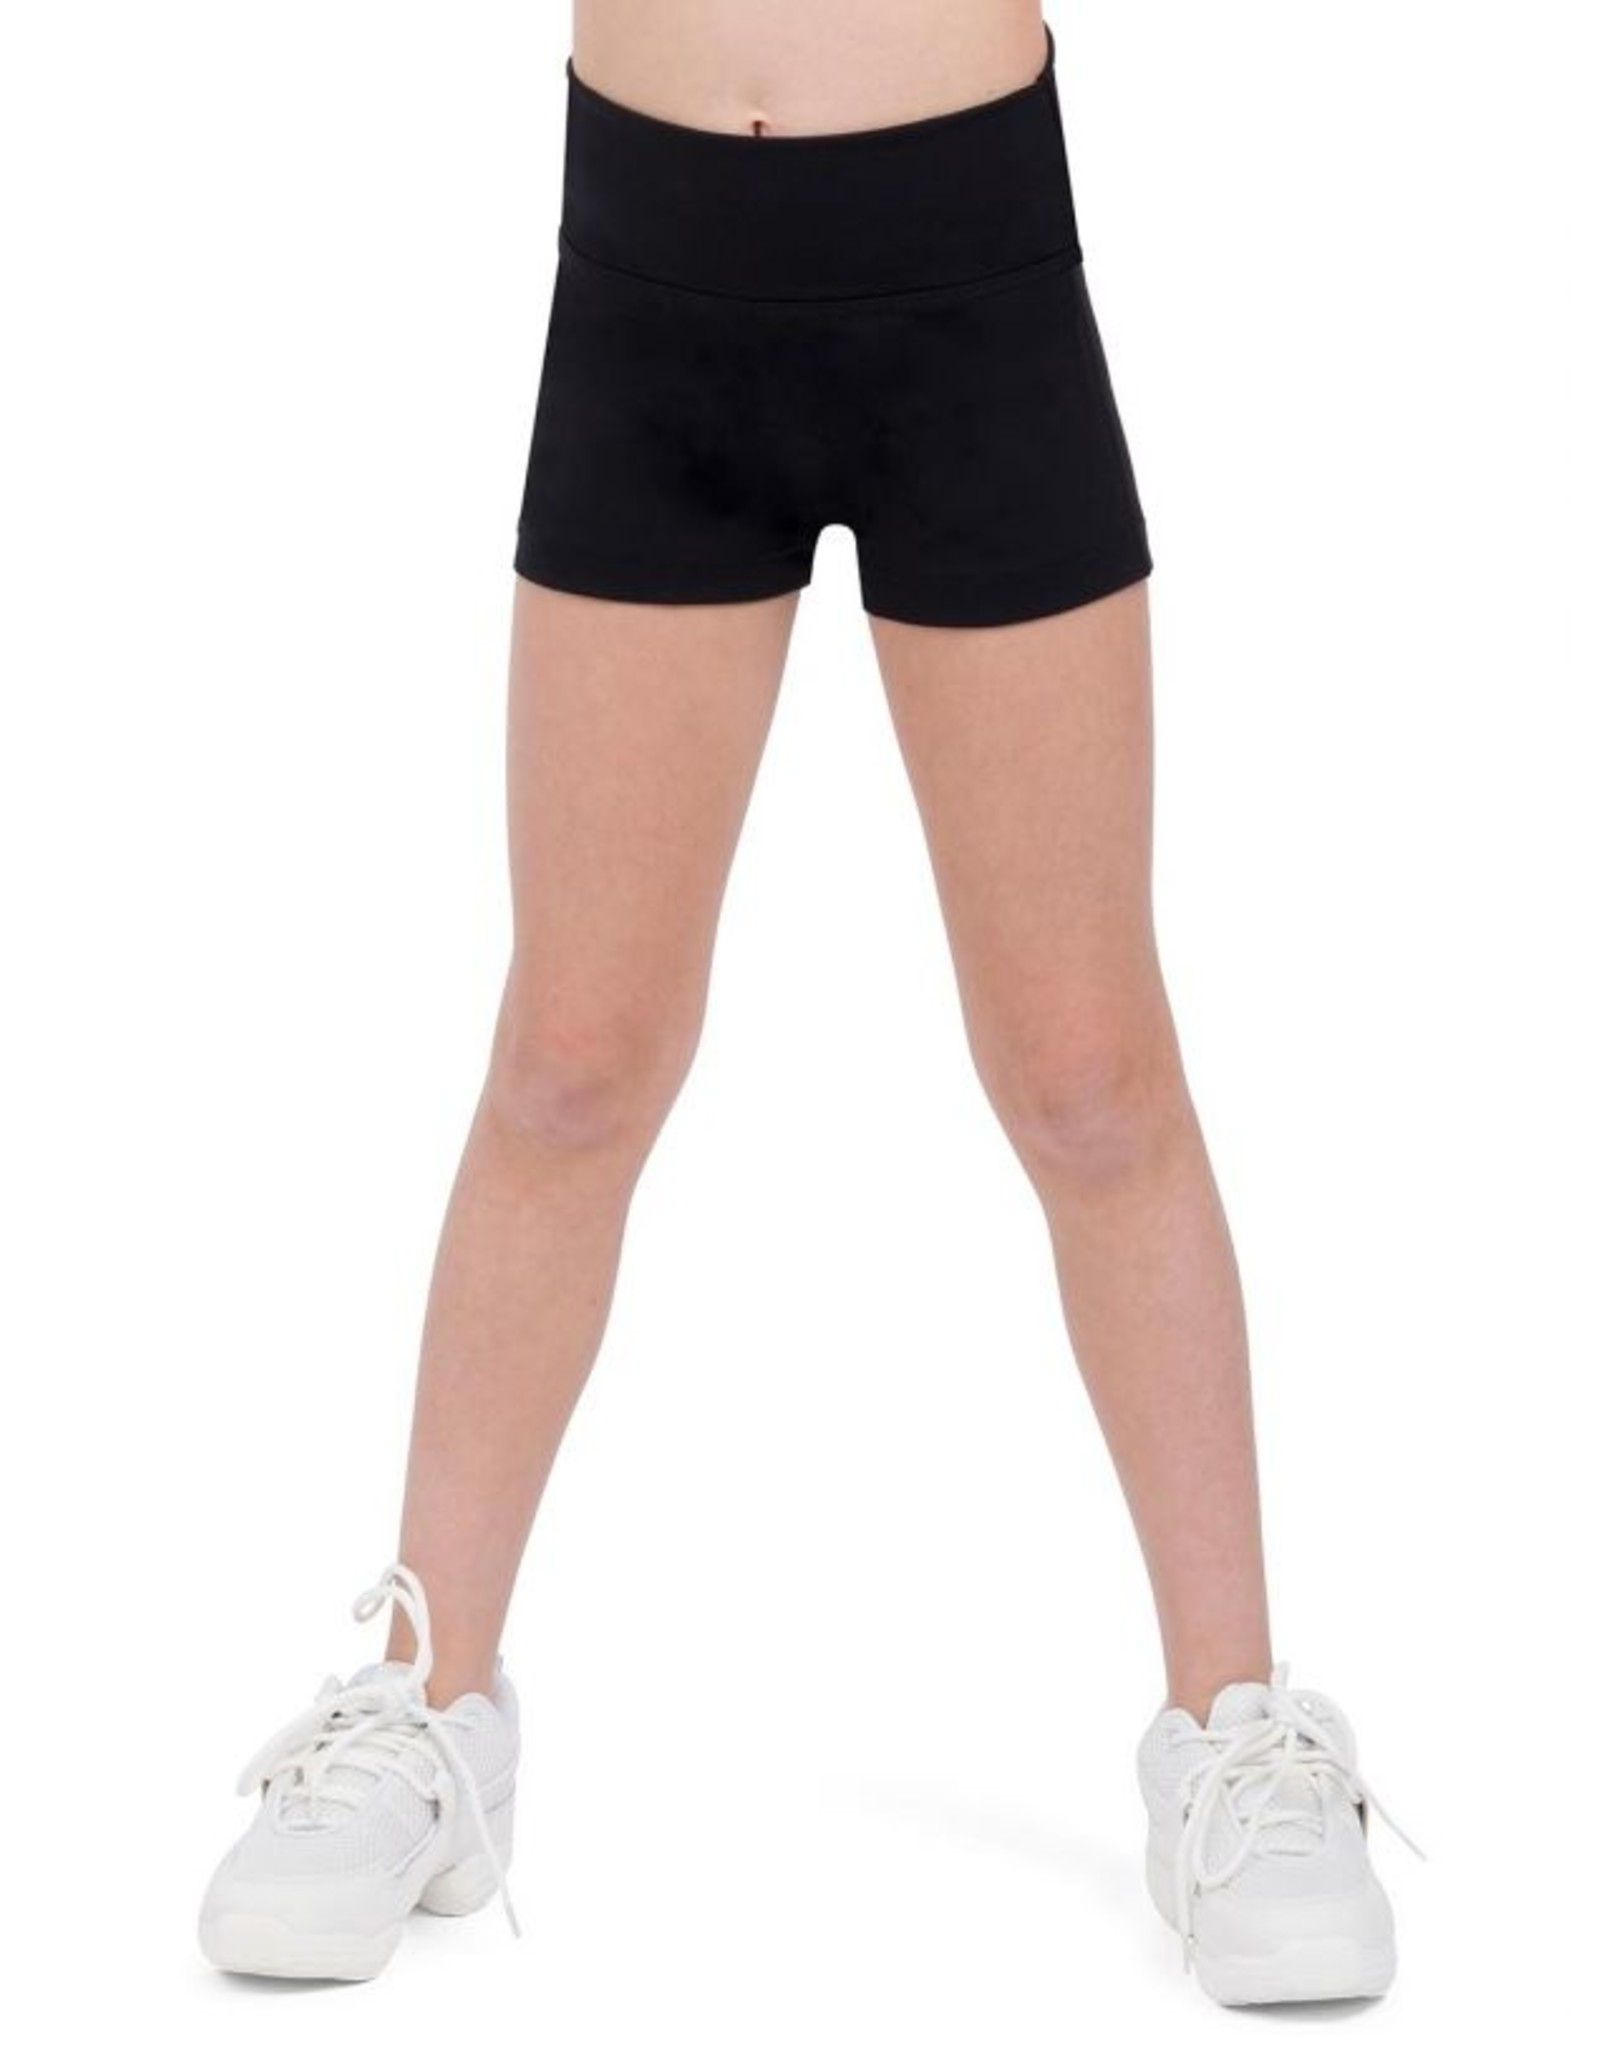 CAPEZIO GIRLS HIGH WAISTED SHORT - TB131C